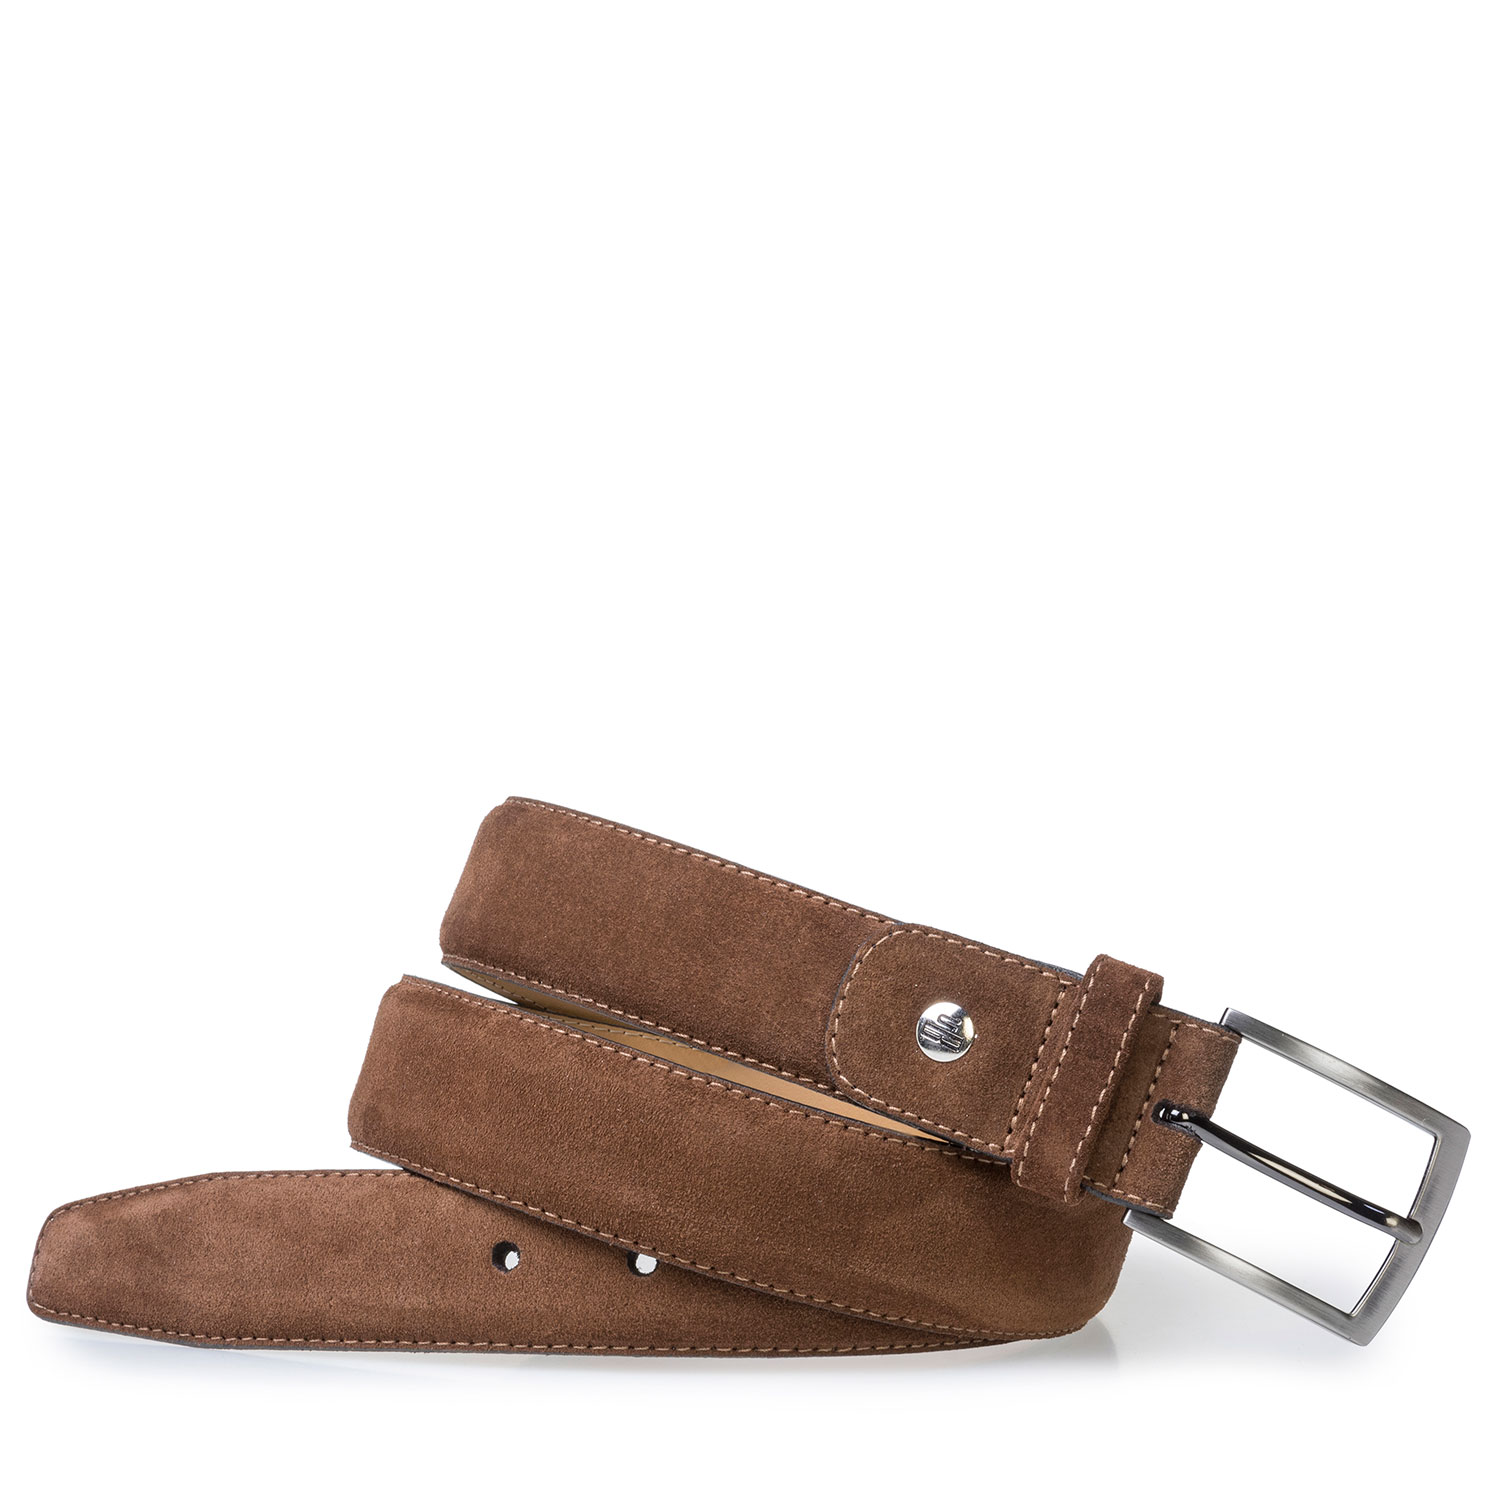 75076/36 - Brown suede belt